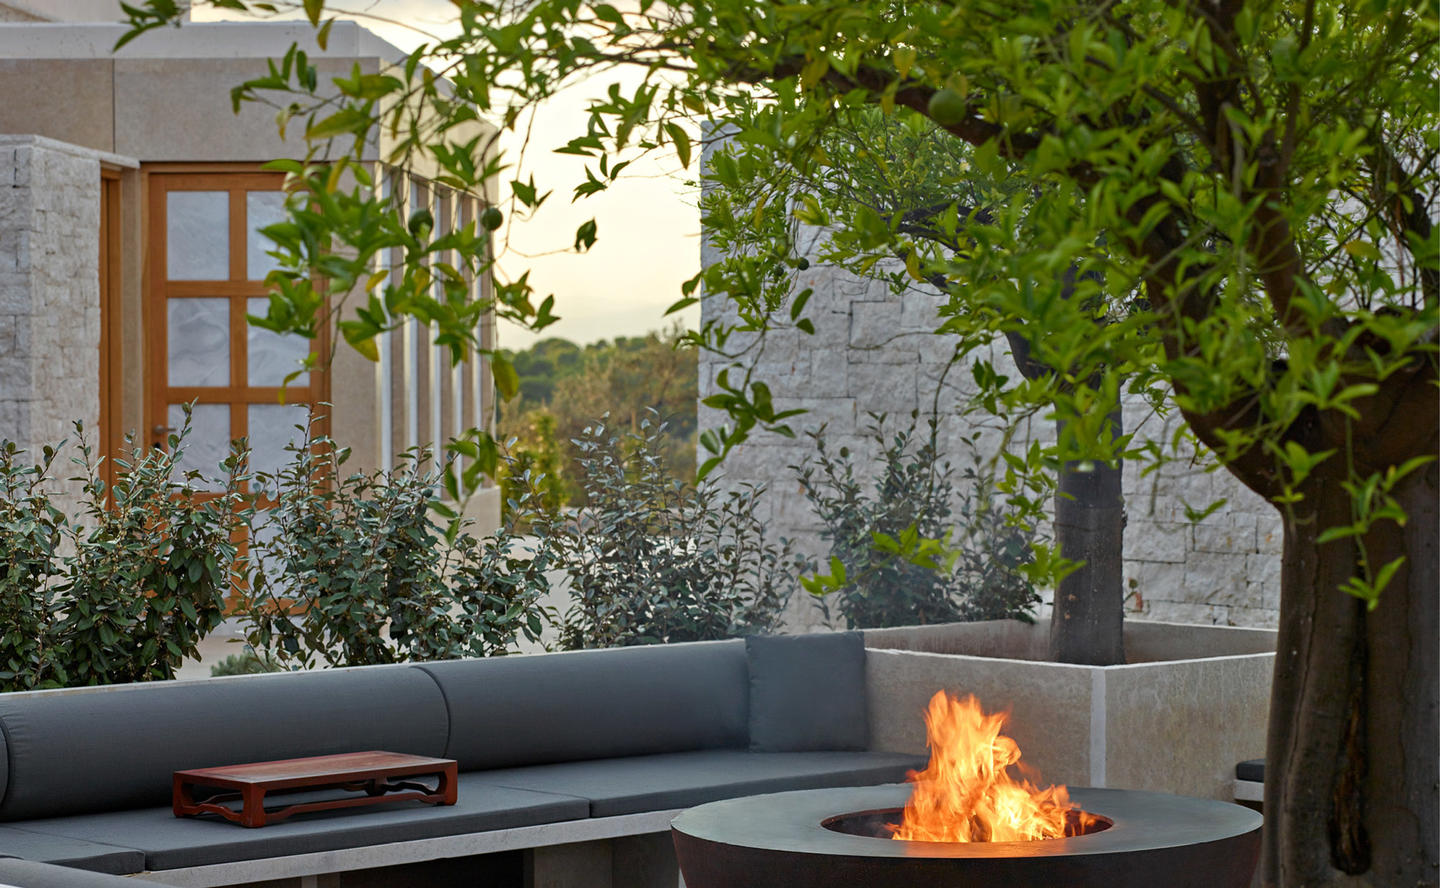 Barbecue and Relaxation Area, Villa 20 - Amanzoe, Greece